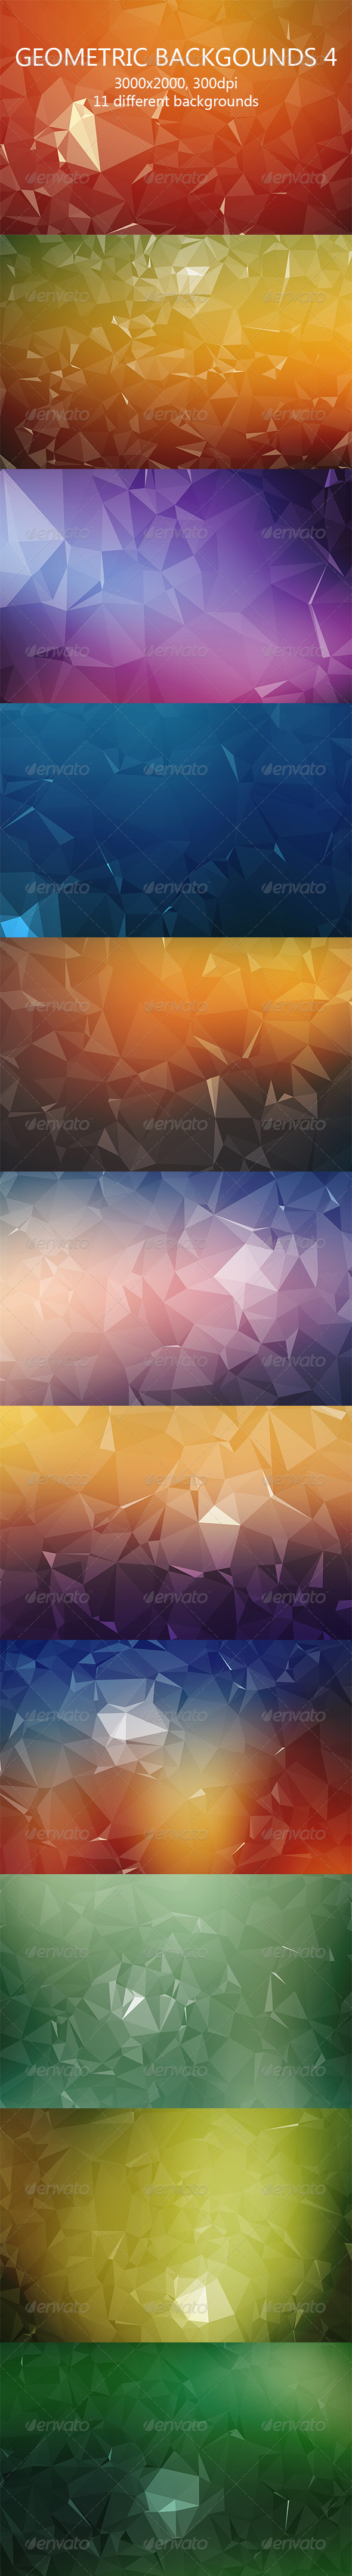 Geometric Backgrounds 4